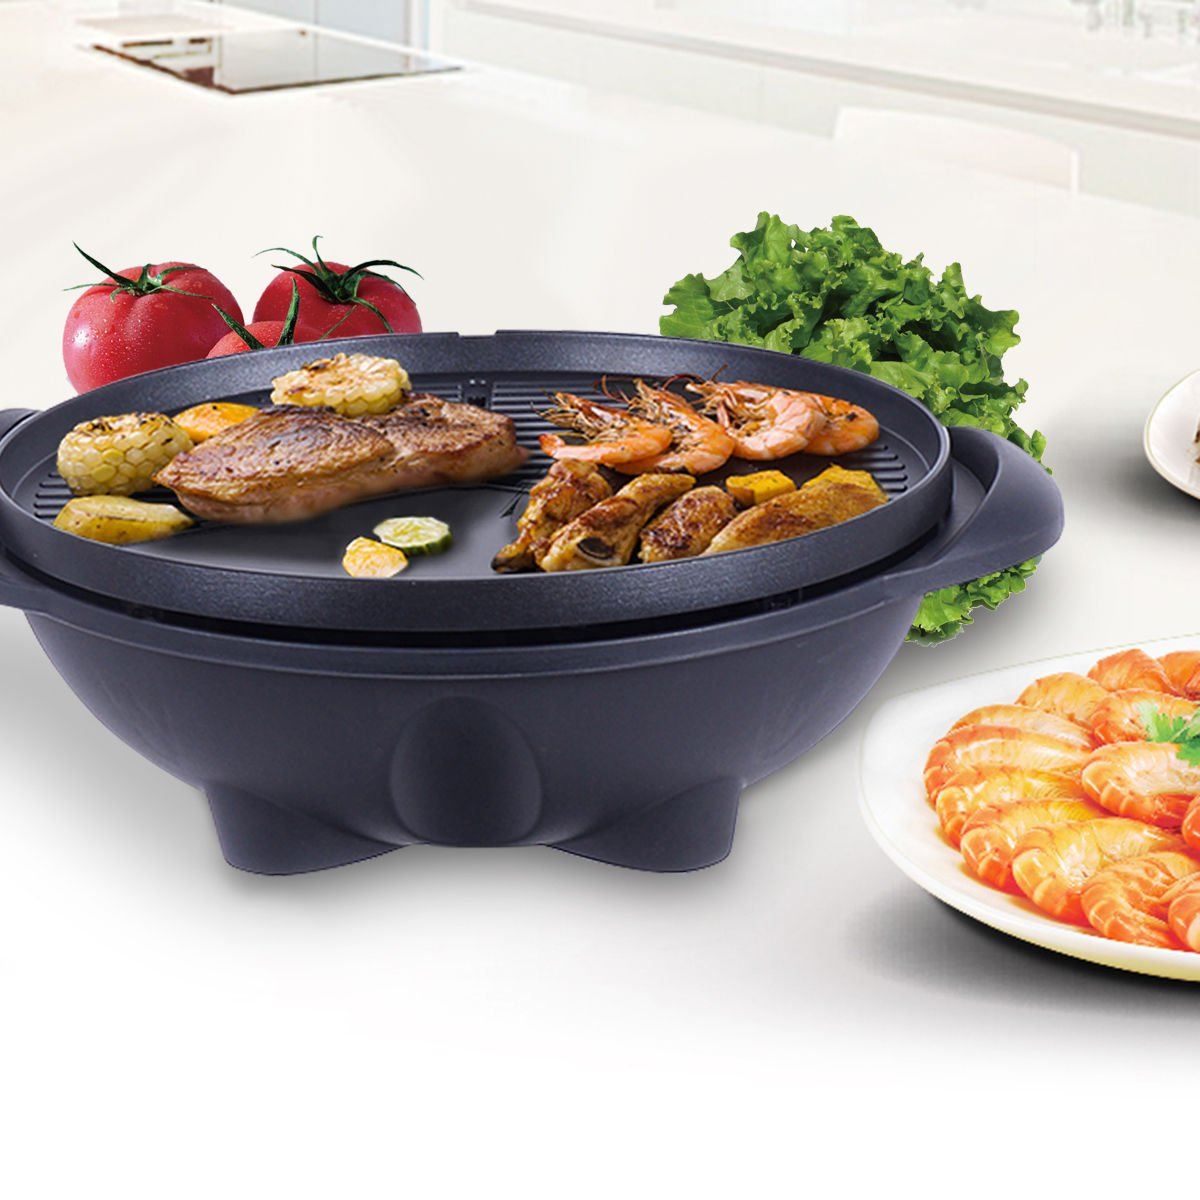 New Electric BBQ Grill 1350W Non-stick 4 Temperature Setting Outdoor Garden Camping by totoshop (Image #4)